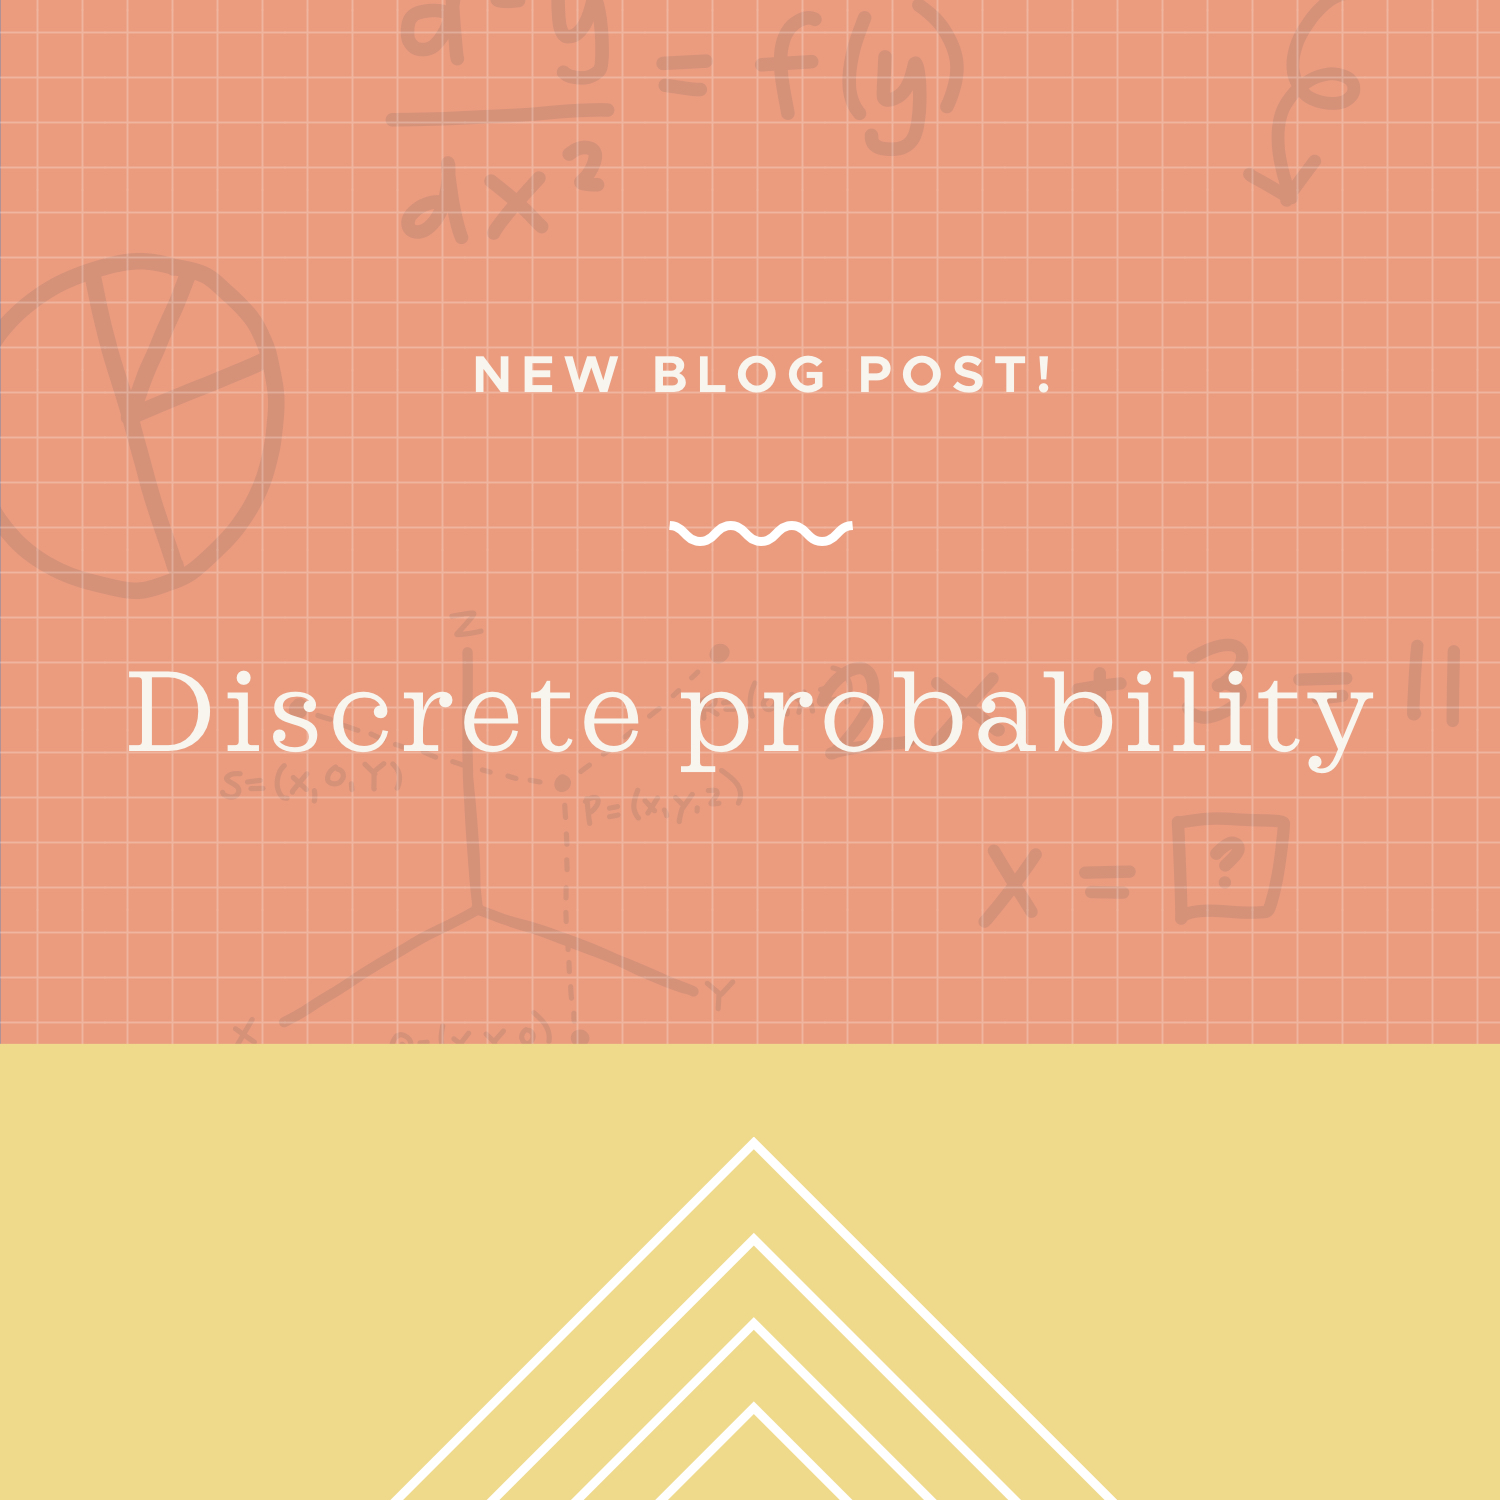 Discrete probability blog post.jpeg